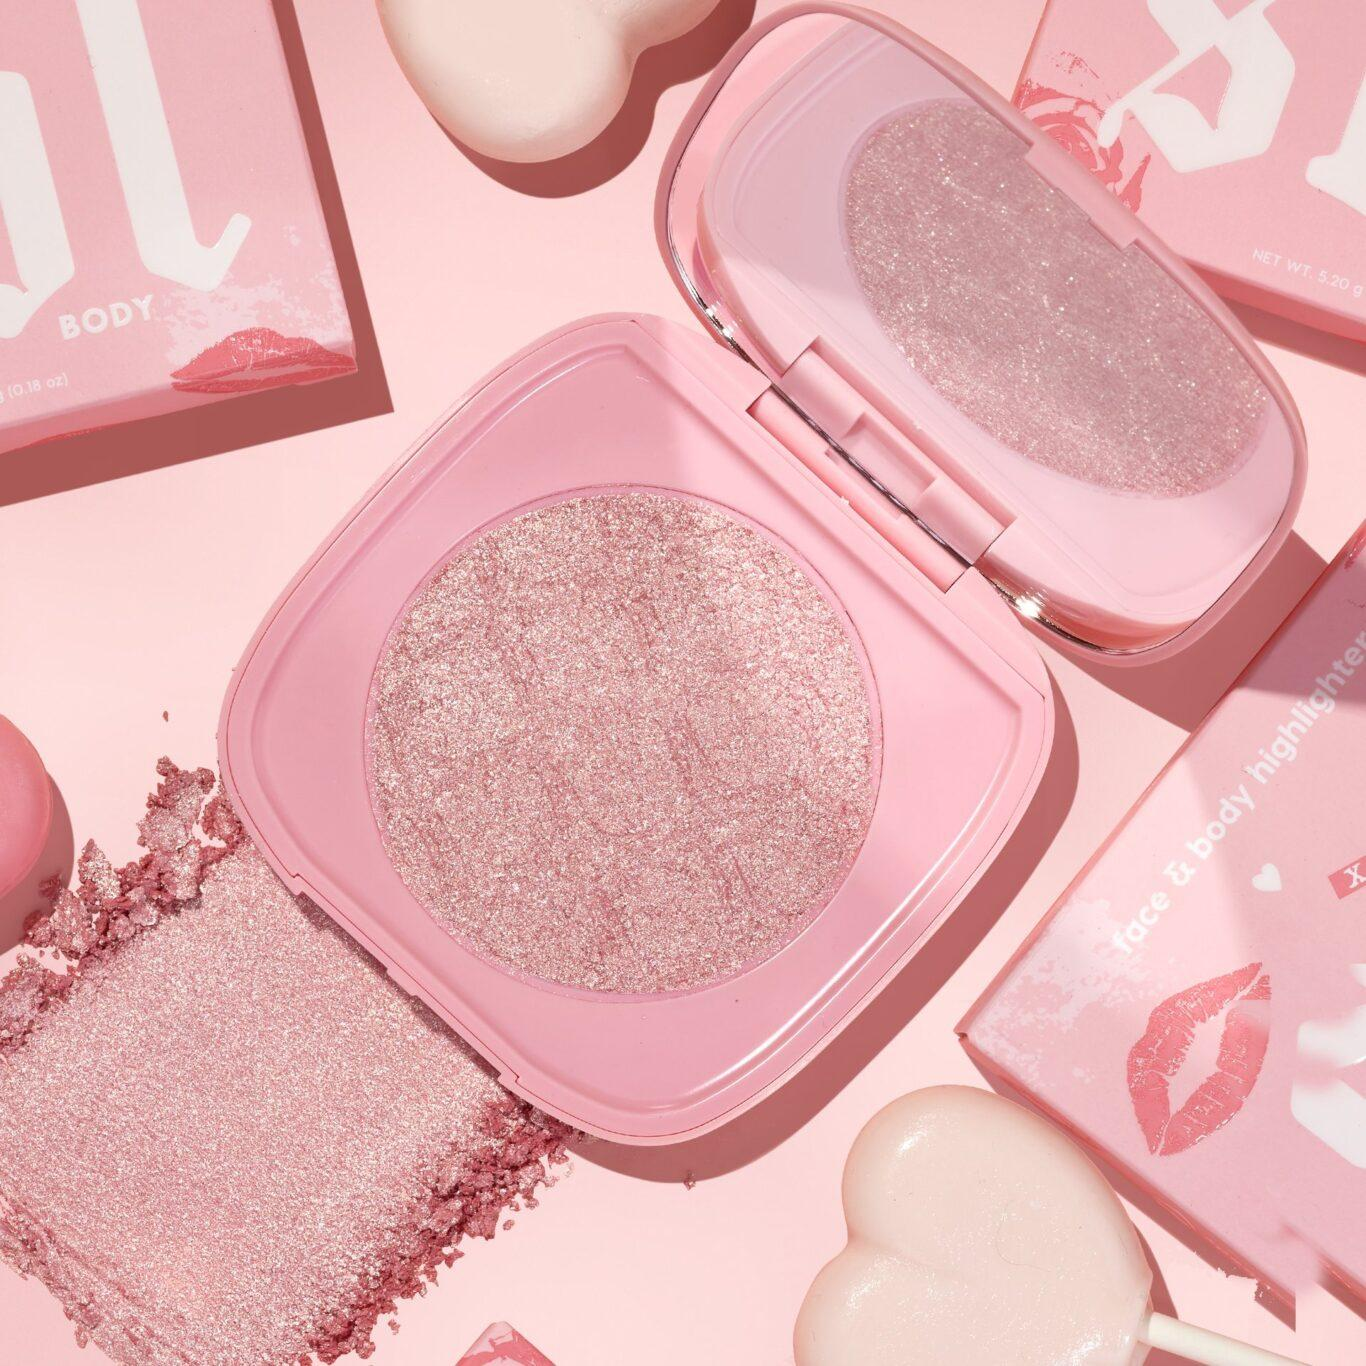 Colourpop Cosmetics Valentine's Day Collection 2021 SOL Body Pink Truffle Mini Face and Body Highlighter